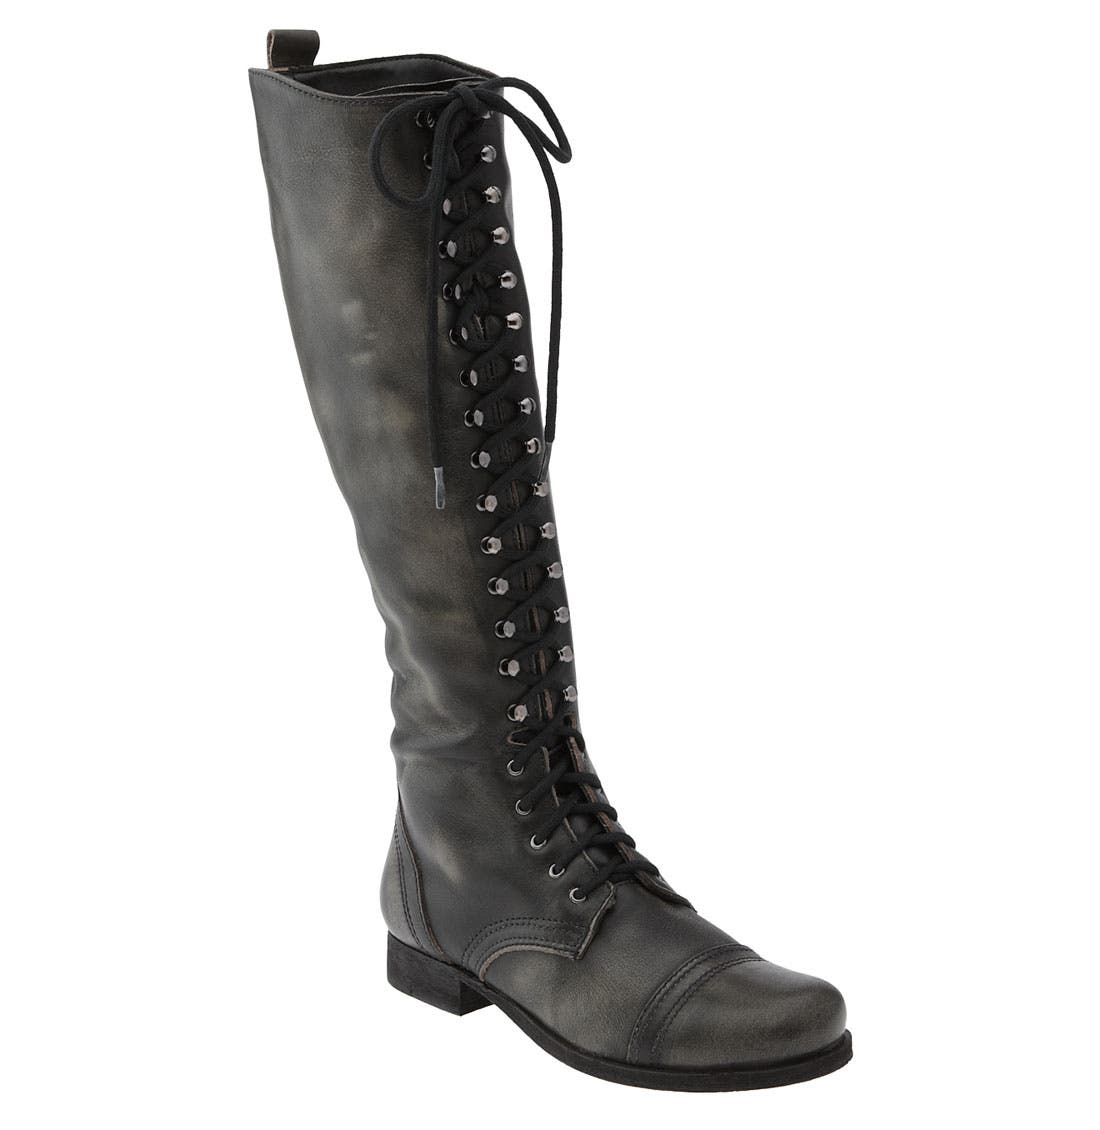 Main Image - Steven by Steve Madden 'Abee' Tall Boot